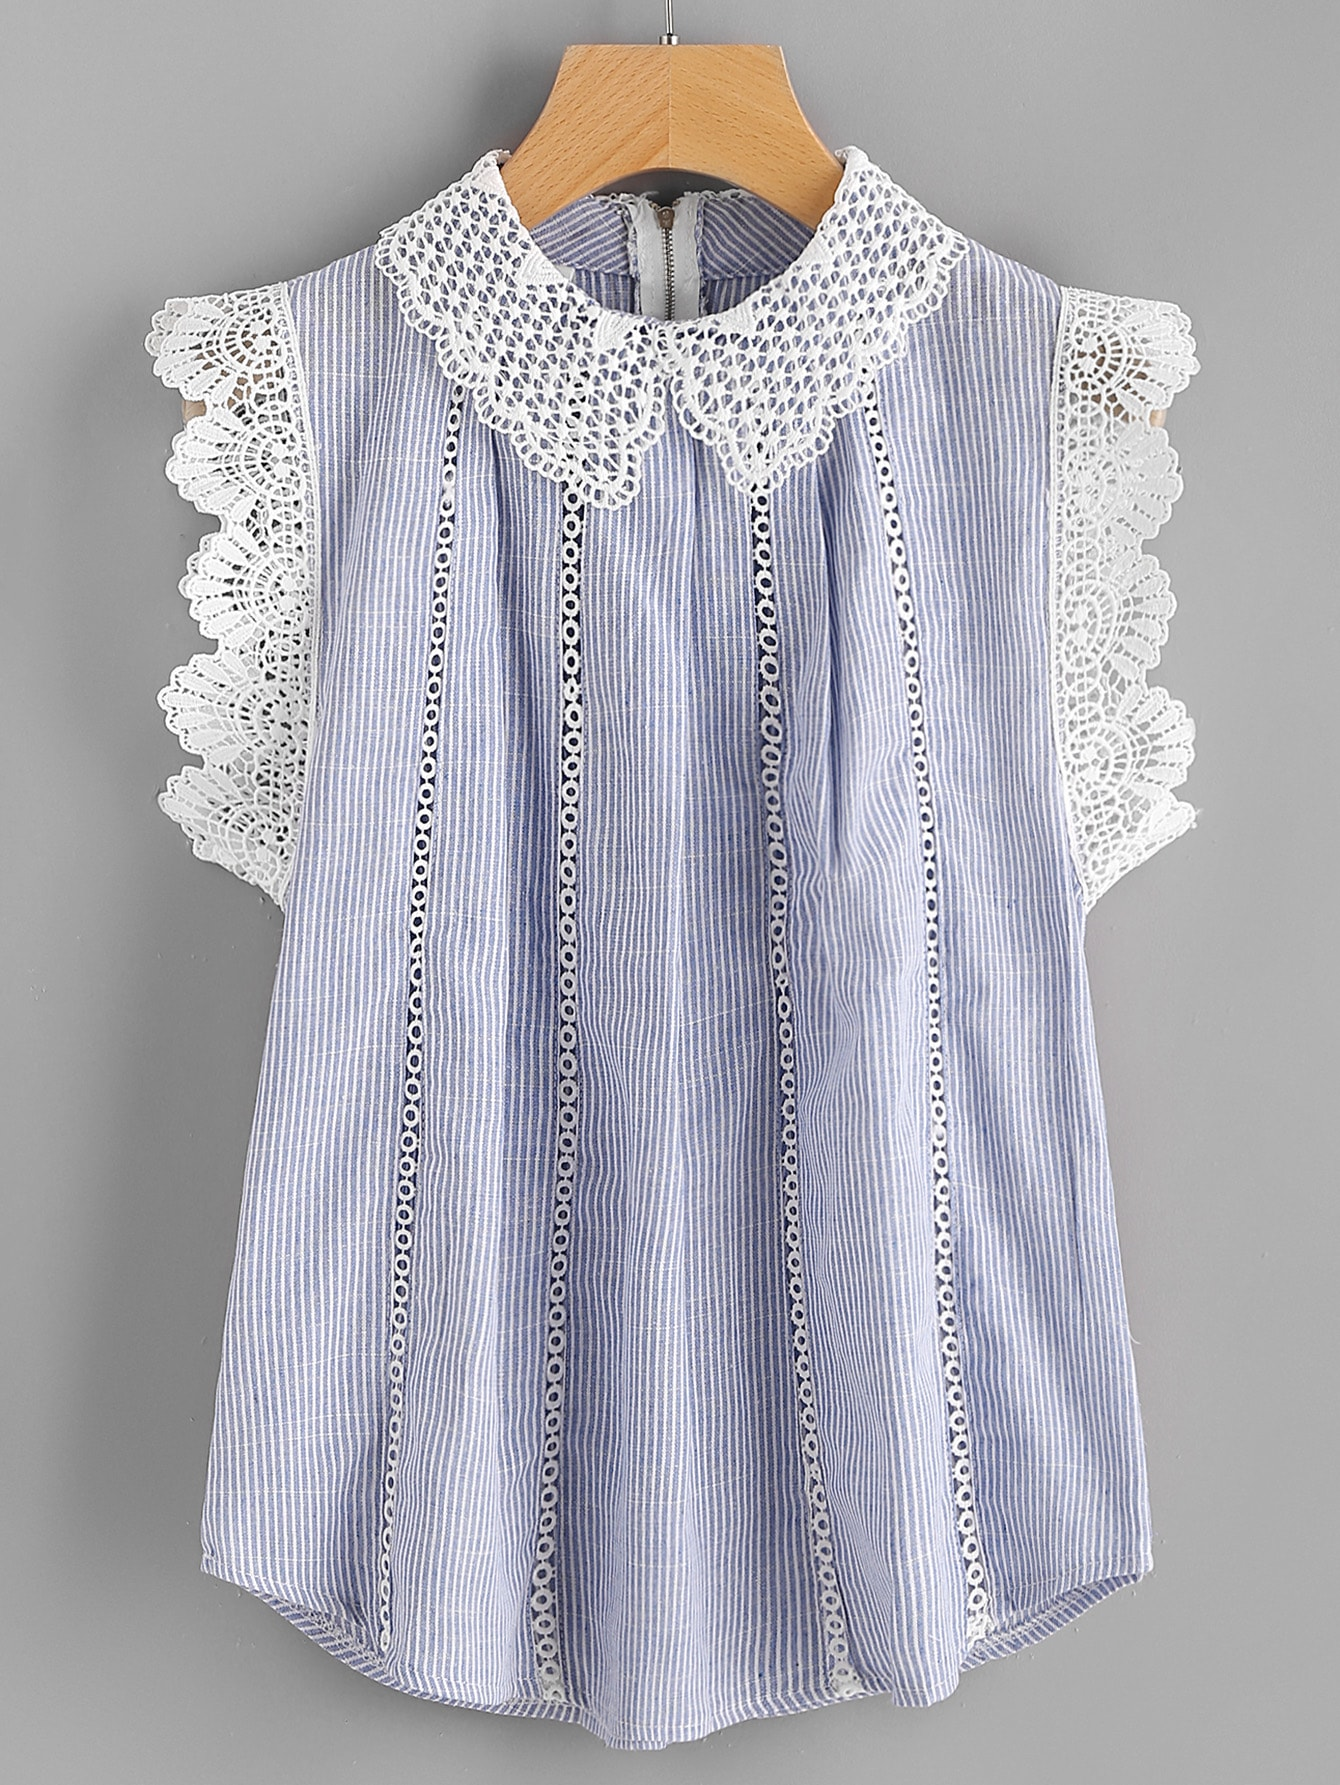 Contrast Scallop Lace Trim Pinstripe Blouse new customized fixed type 400w 450 ohm ceramic tube resistor